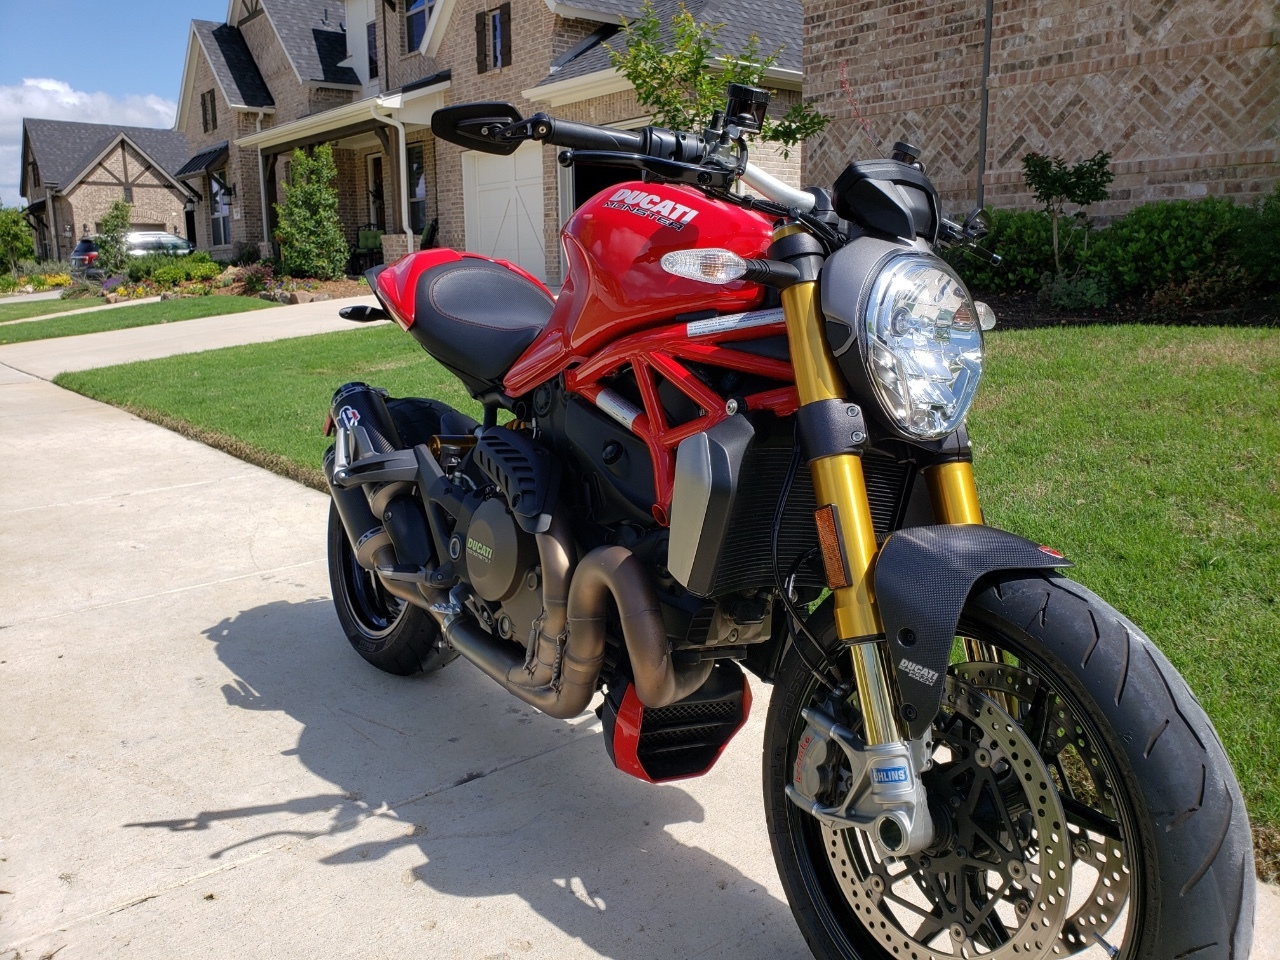 Texas - Used Ducati For Sale - Ducati Motorcycle,Trailers